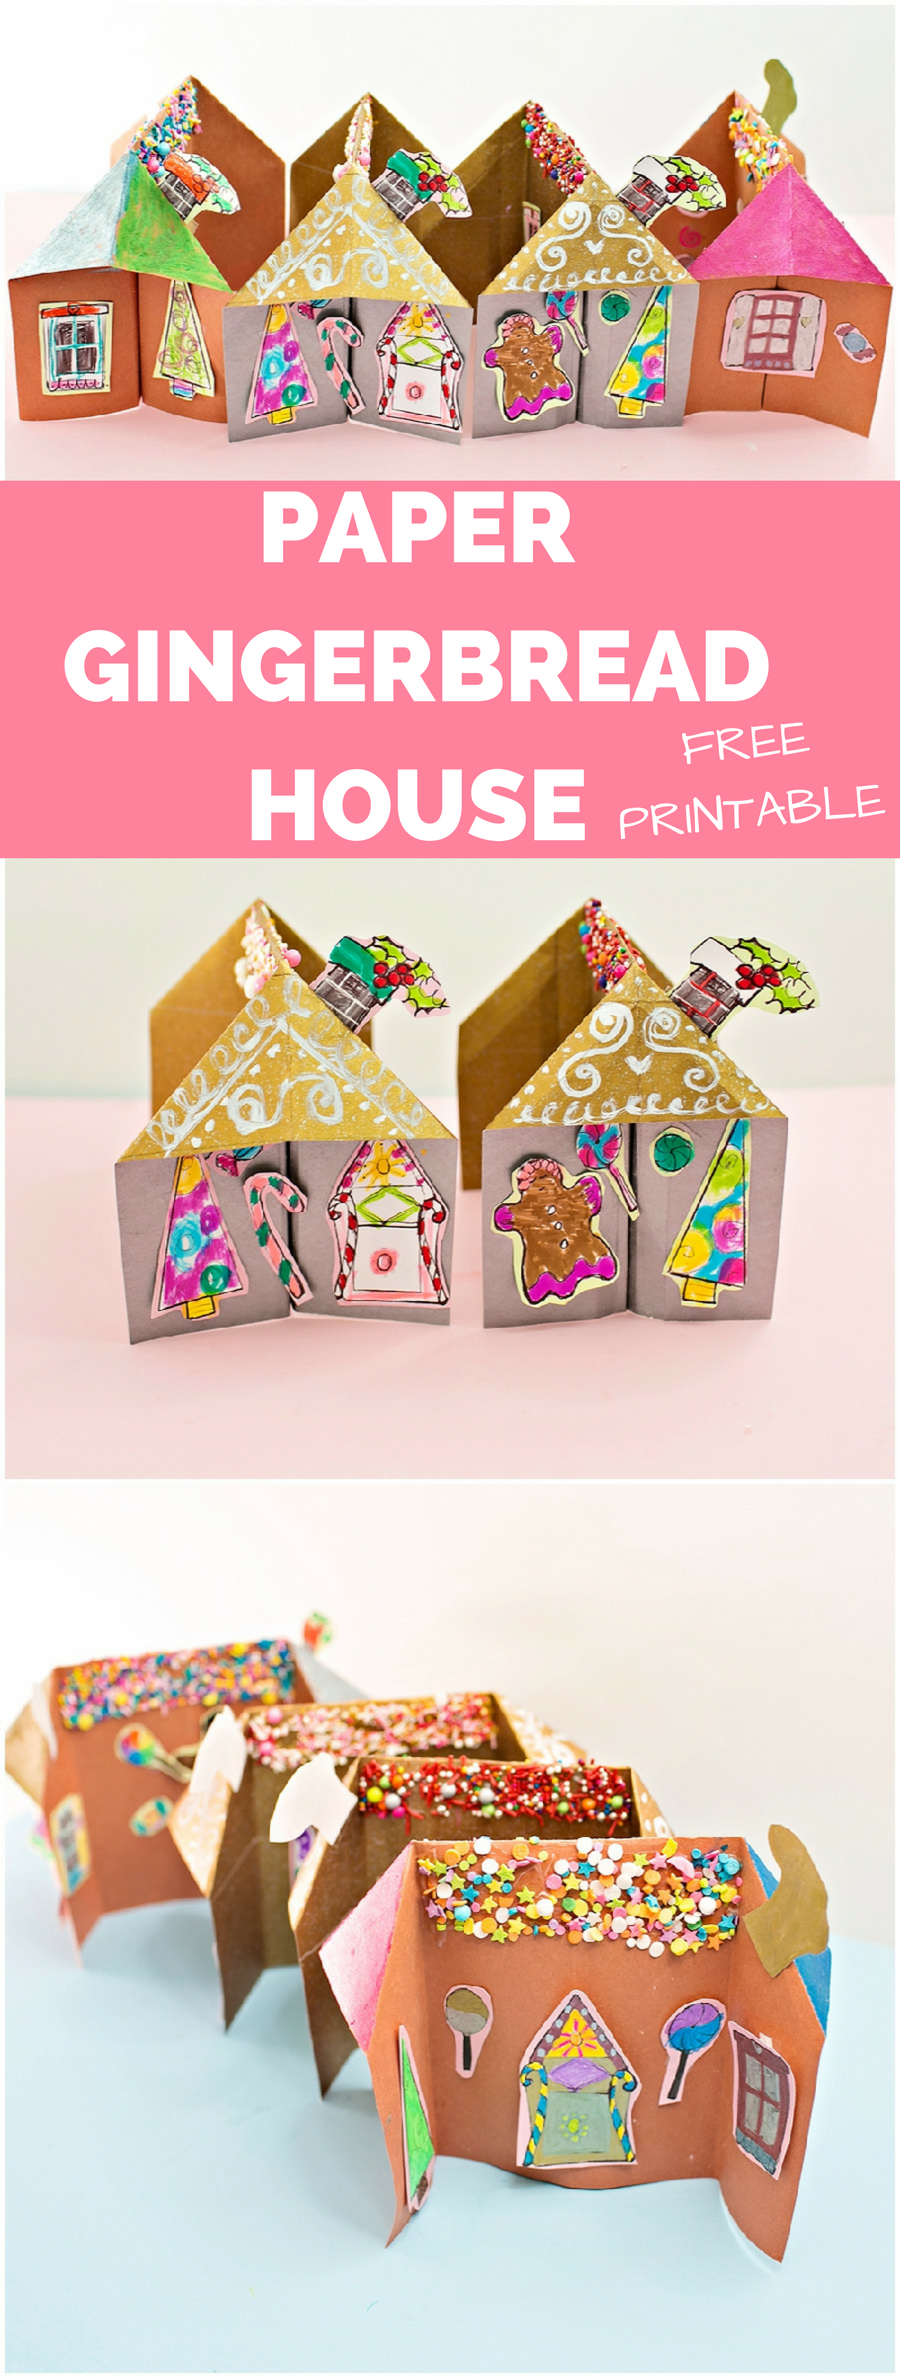 Gingerbread house free printables - 3d Paper Gingerbread House Craft The Kid Will Love Making Sprinkle Roofs And Decorating These